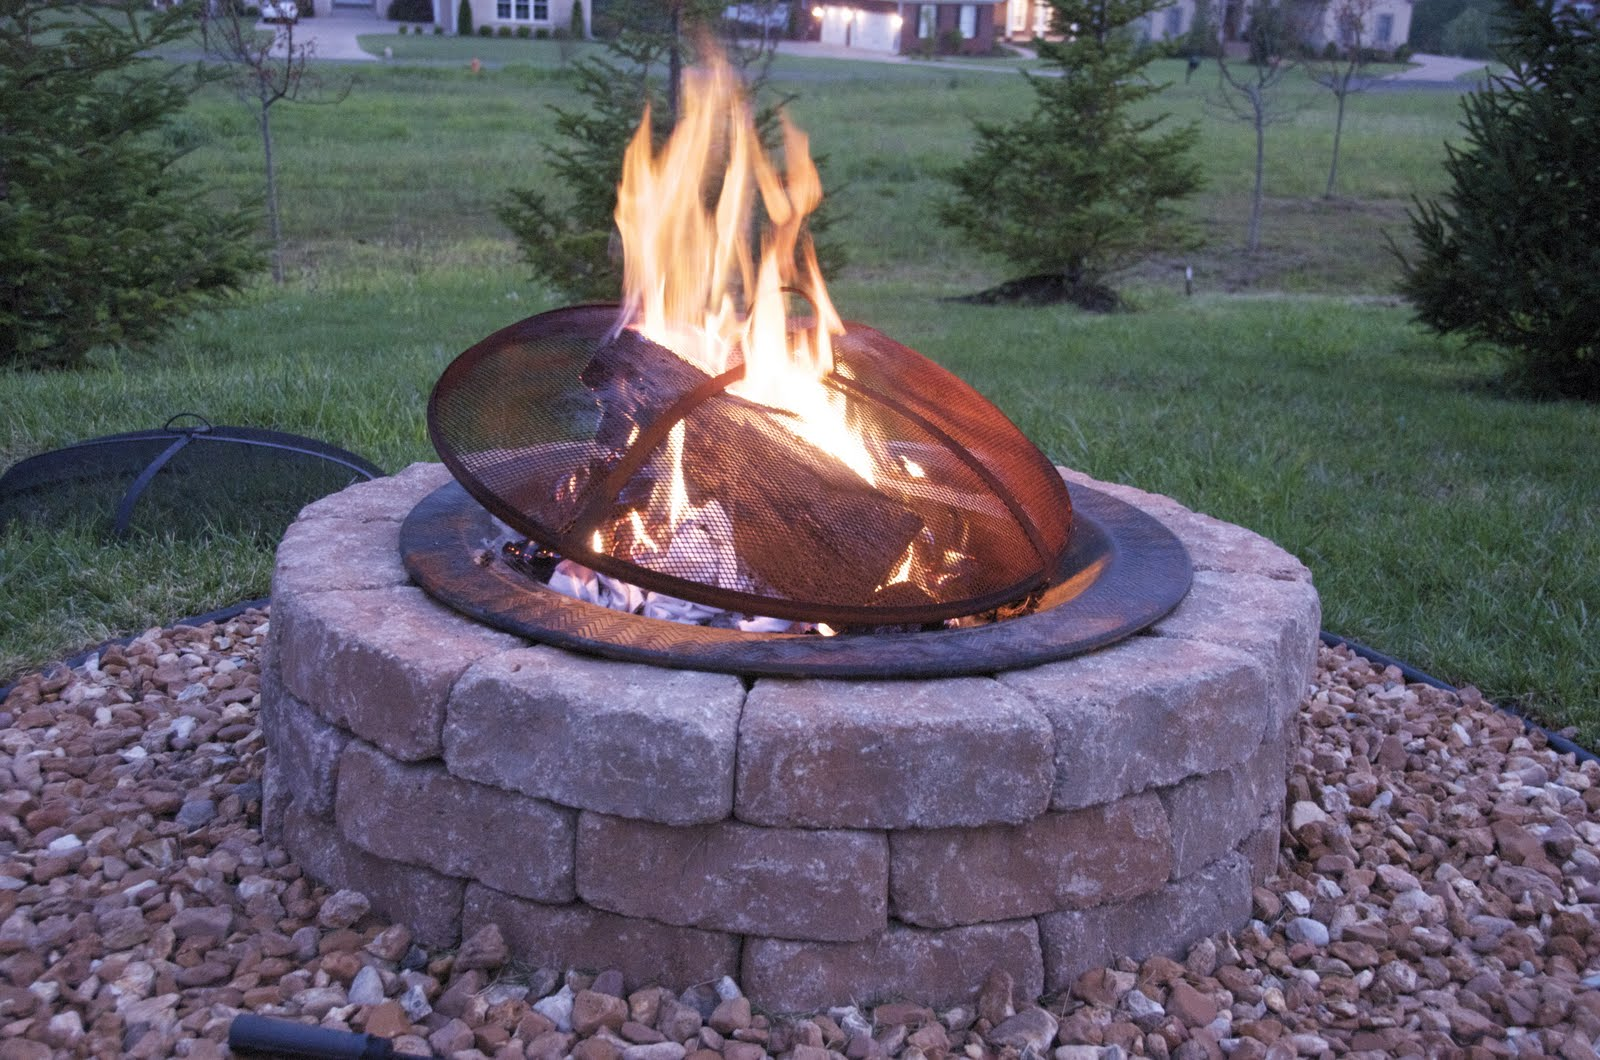 Complete Round Stone Fire Pit Designs with Metal Cover near Green Grass Yard